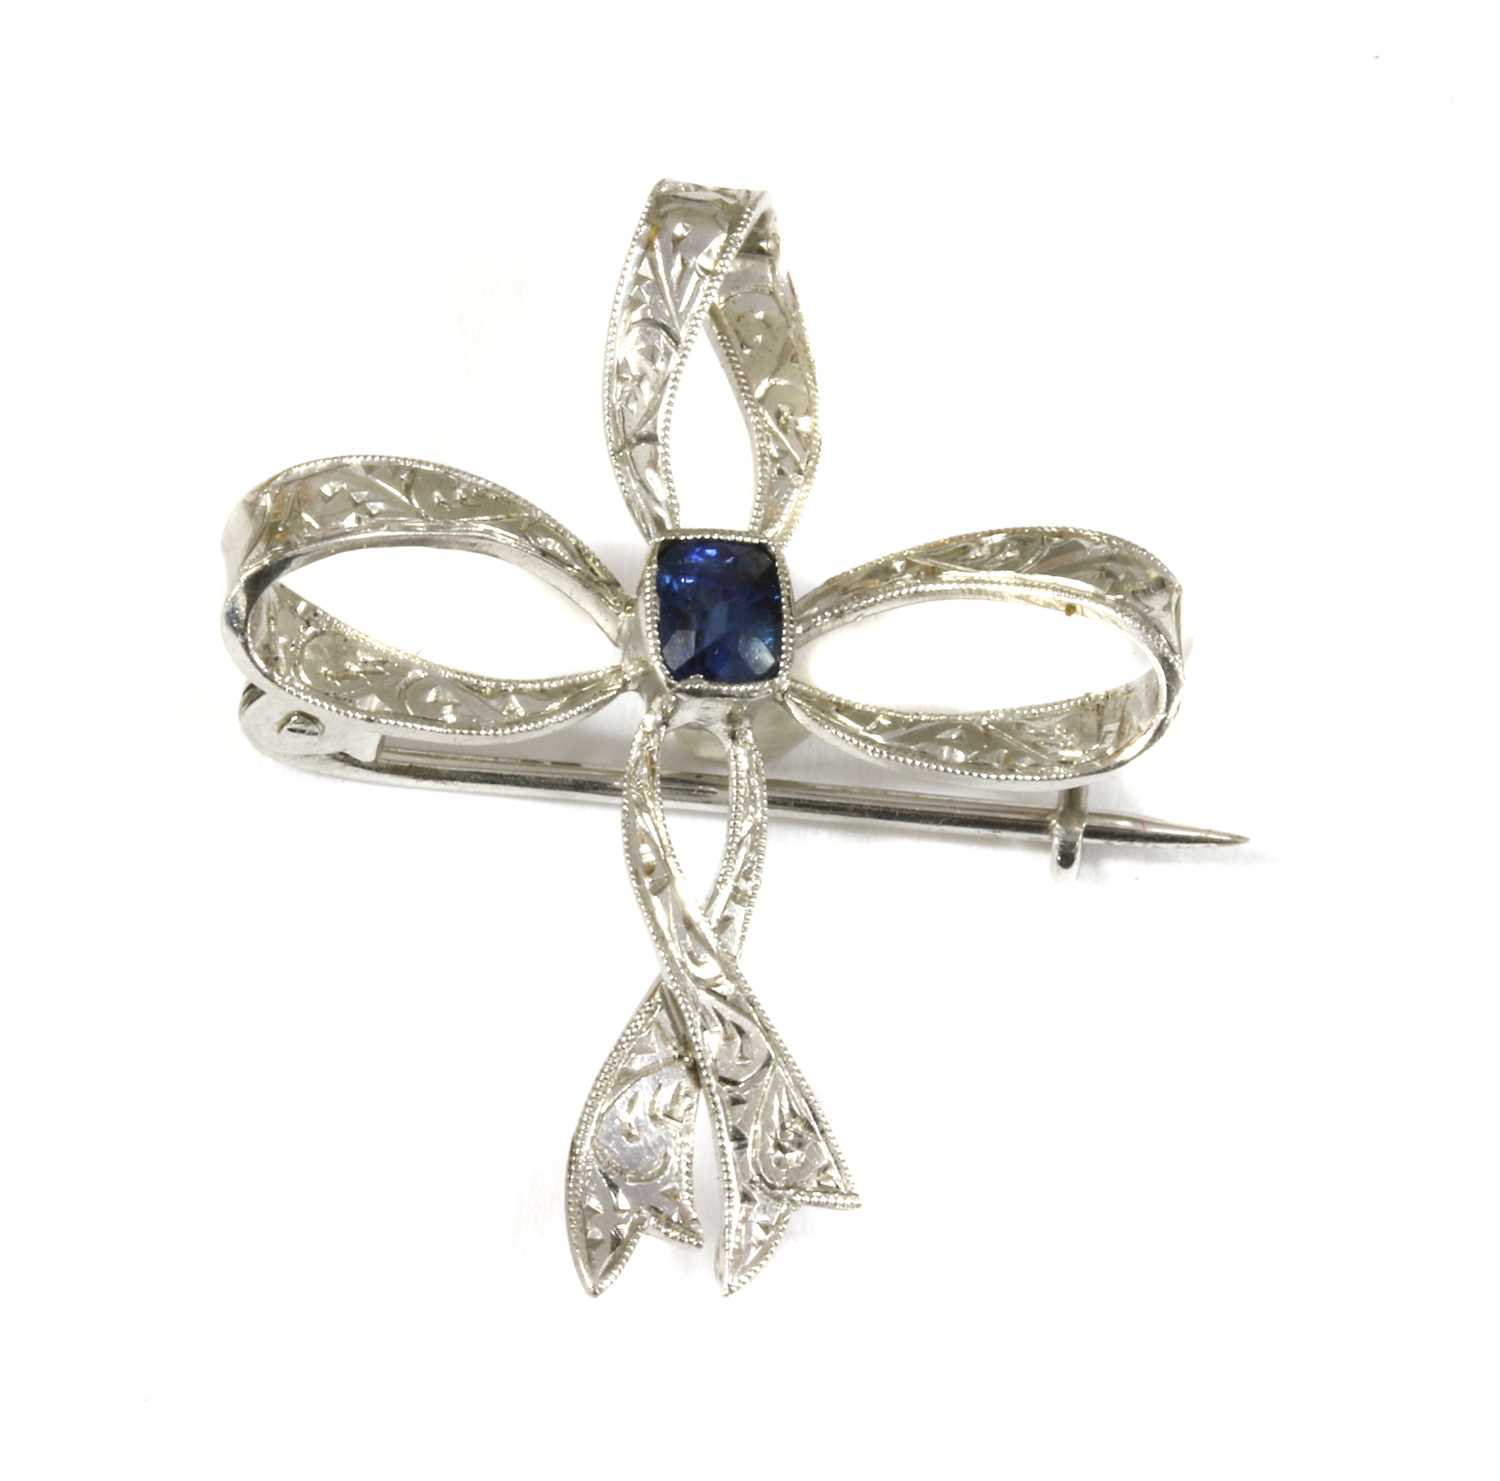 Lot 18-An Edwardian white gold sapphire bow brooch